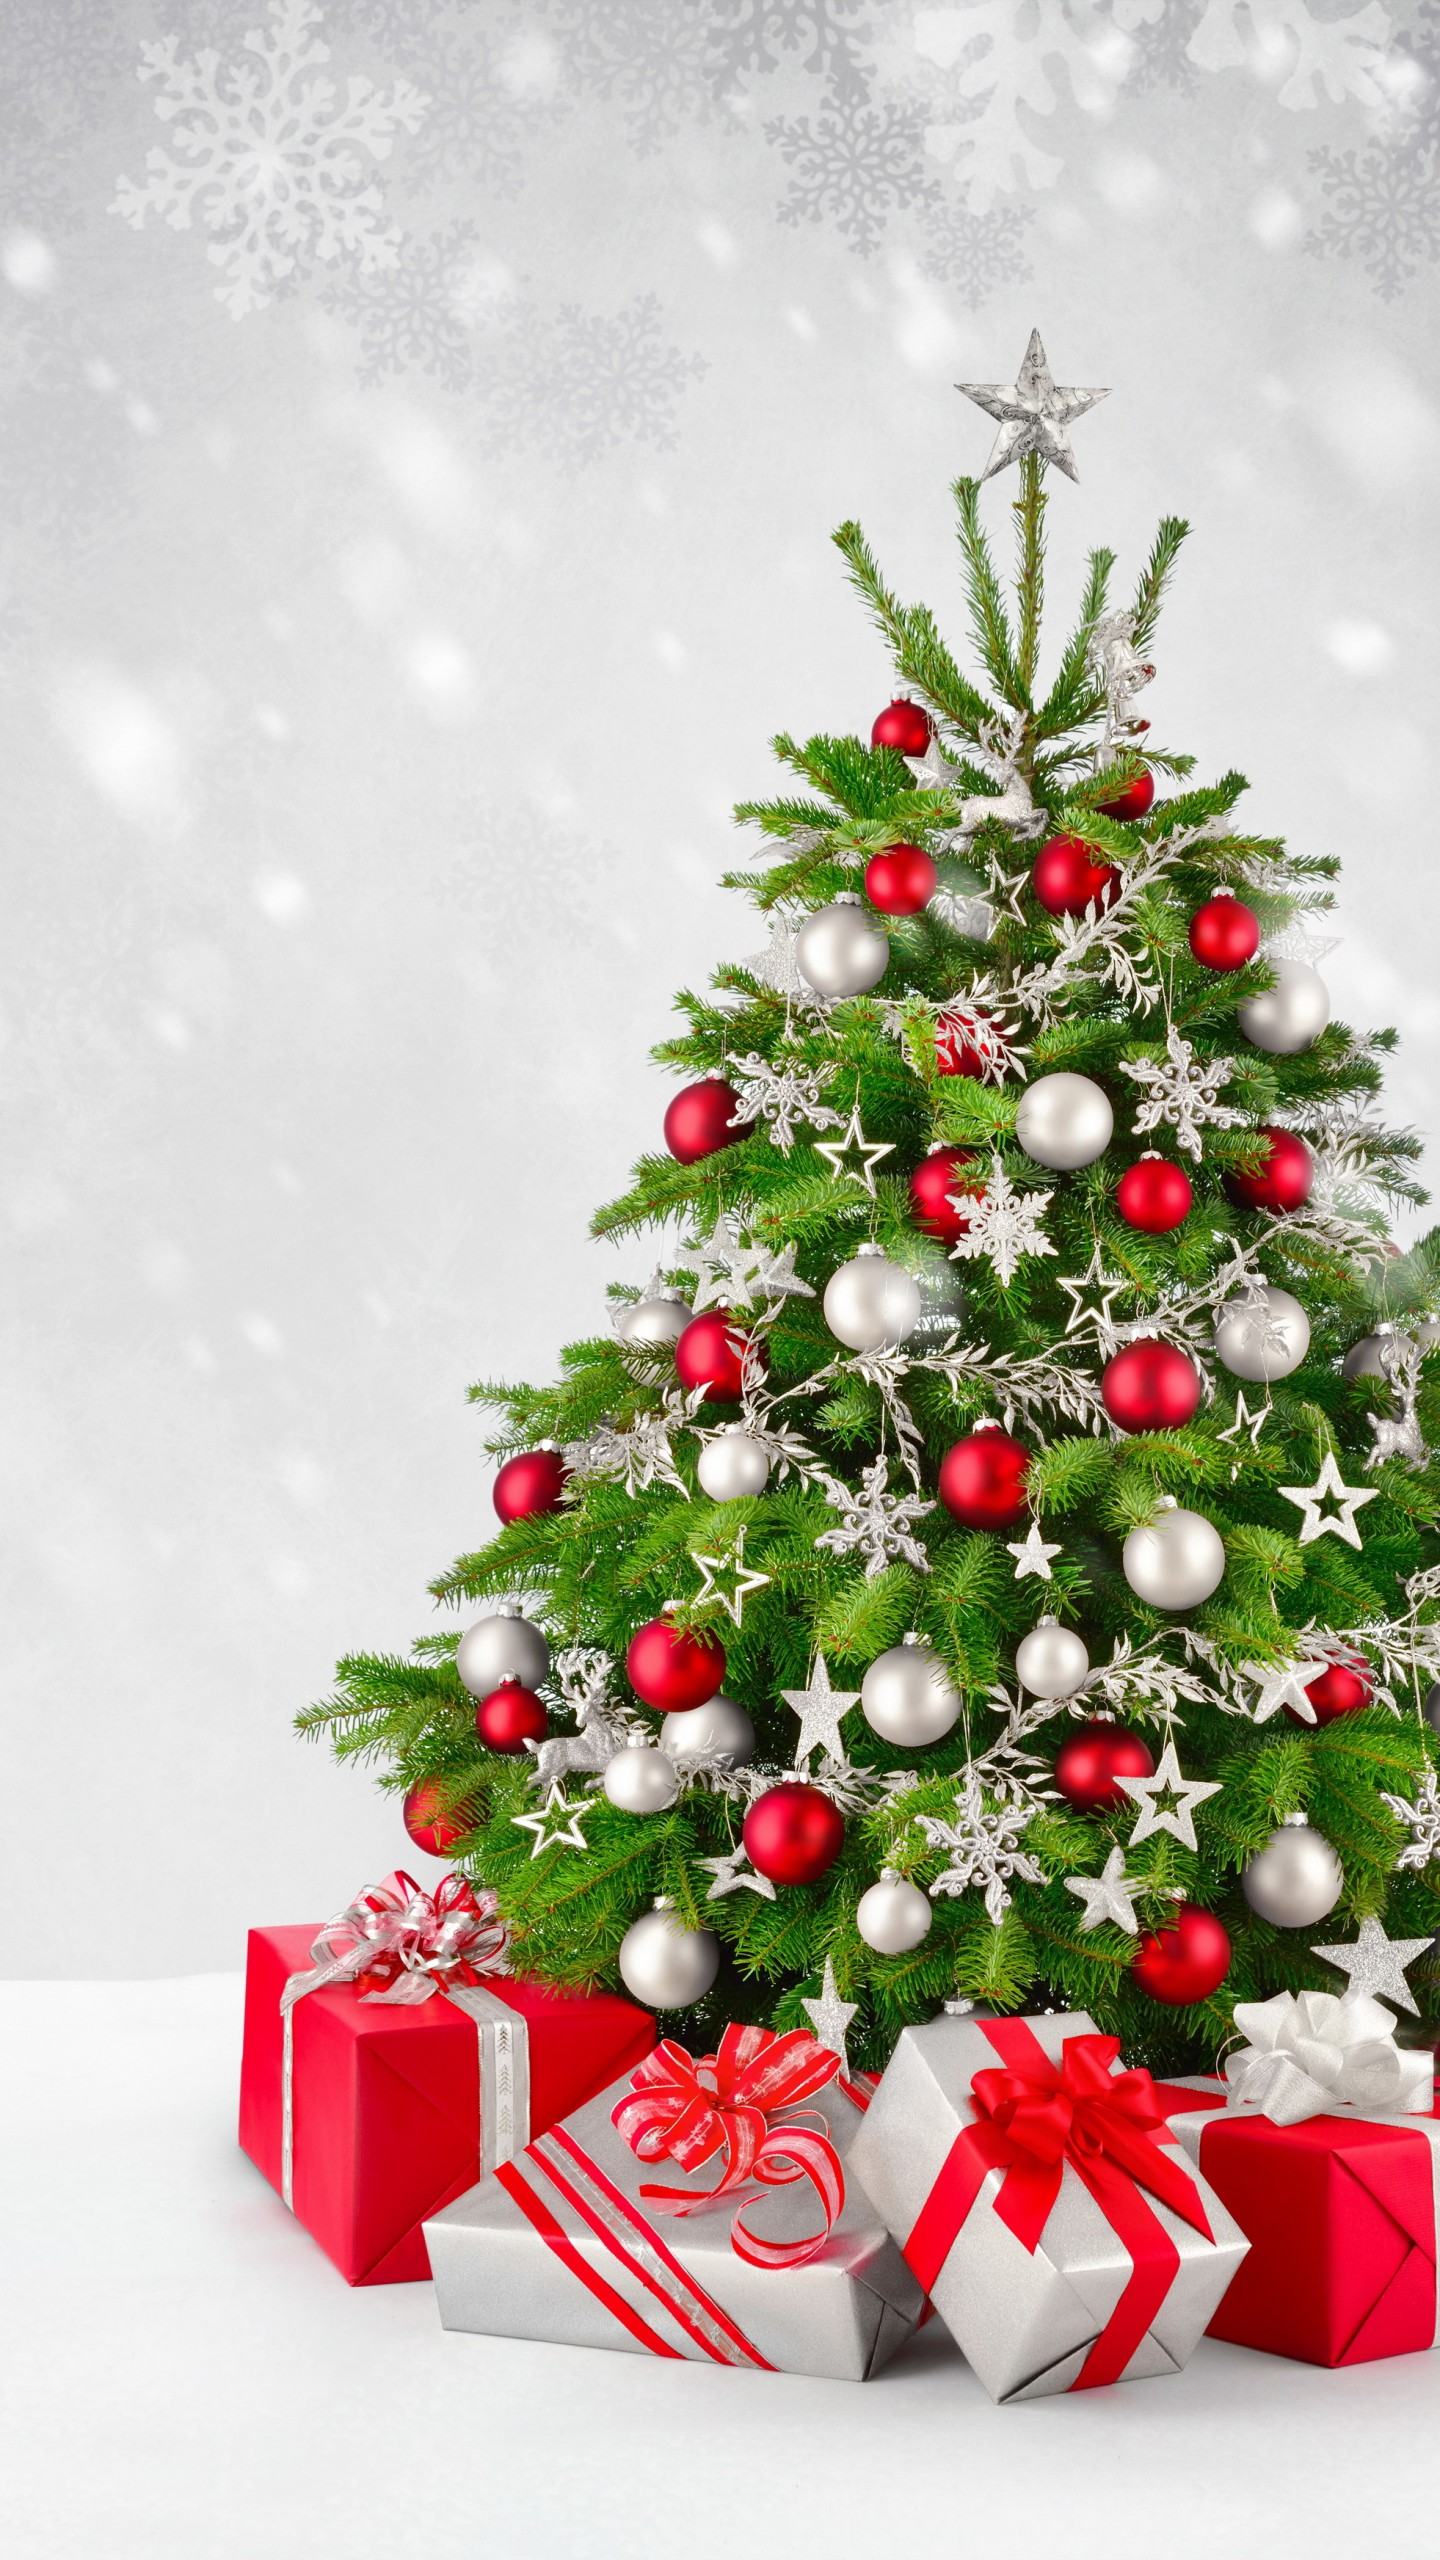 Christmas Tree Presents iPhone Wallpaper 1440x2560